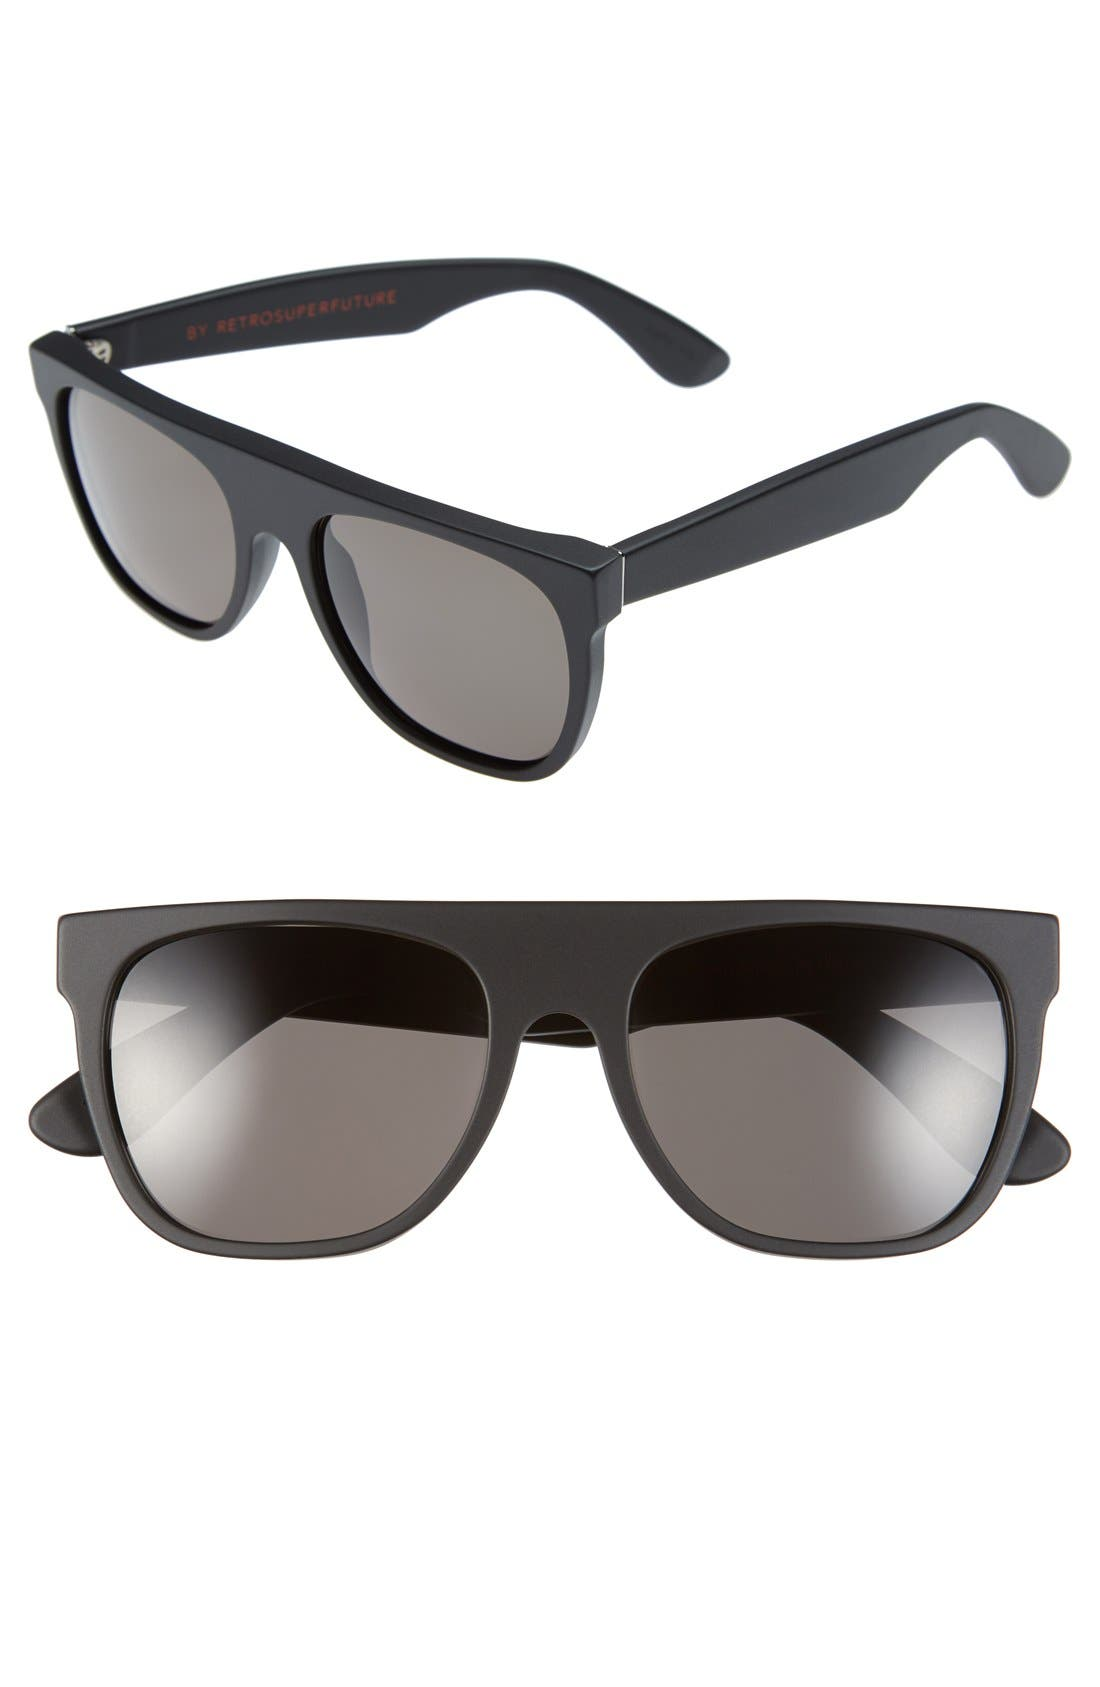 Alternate Image 1 Selected - SUPER by RETROSUPERFUTURE® 'Flat Top' 55mm Retro Sunglasses